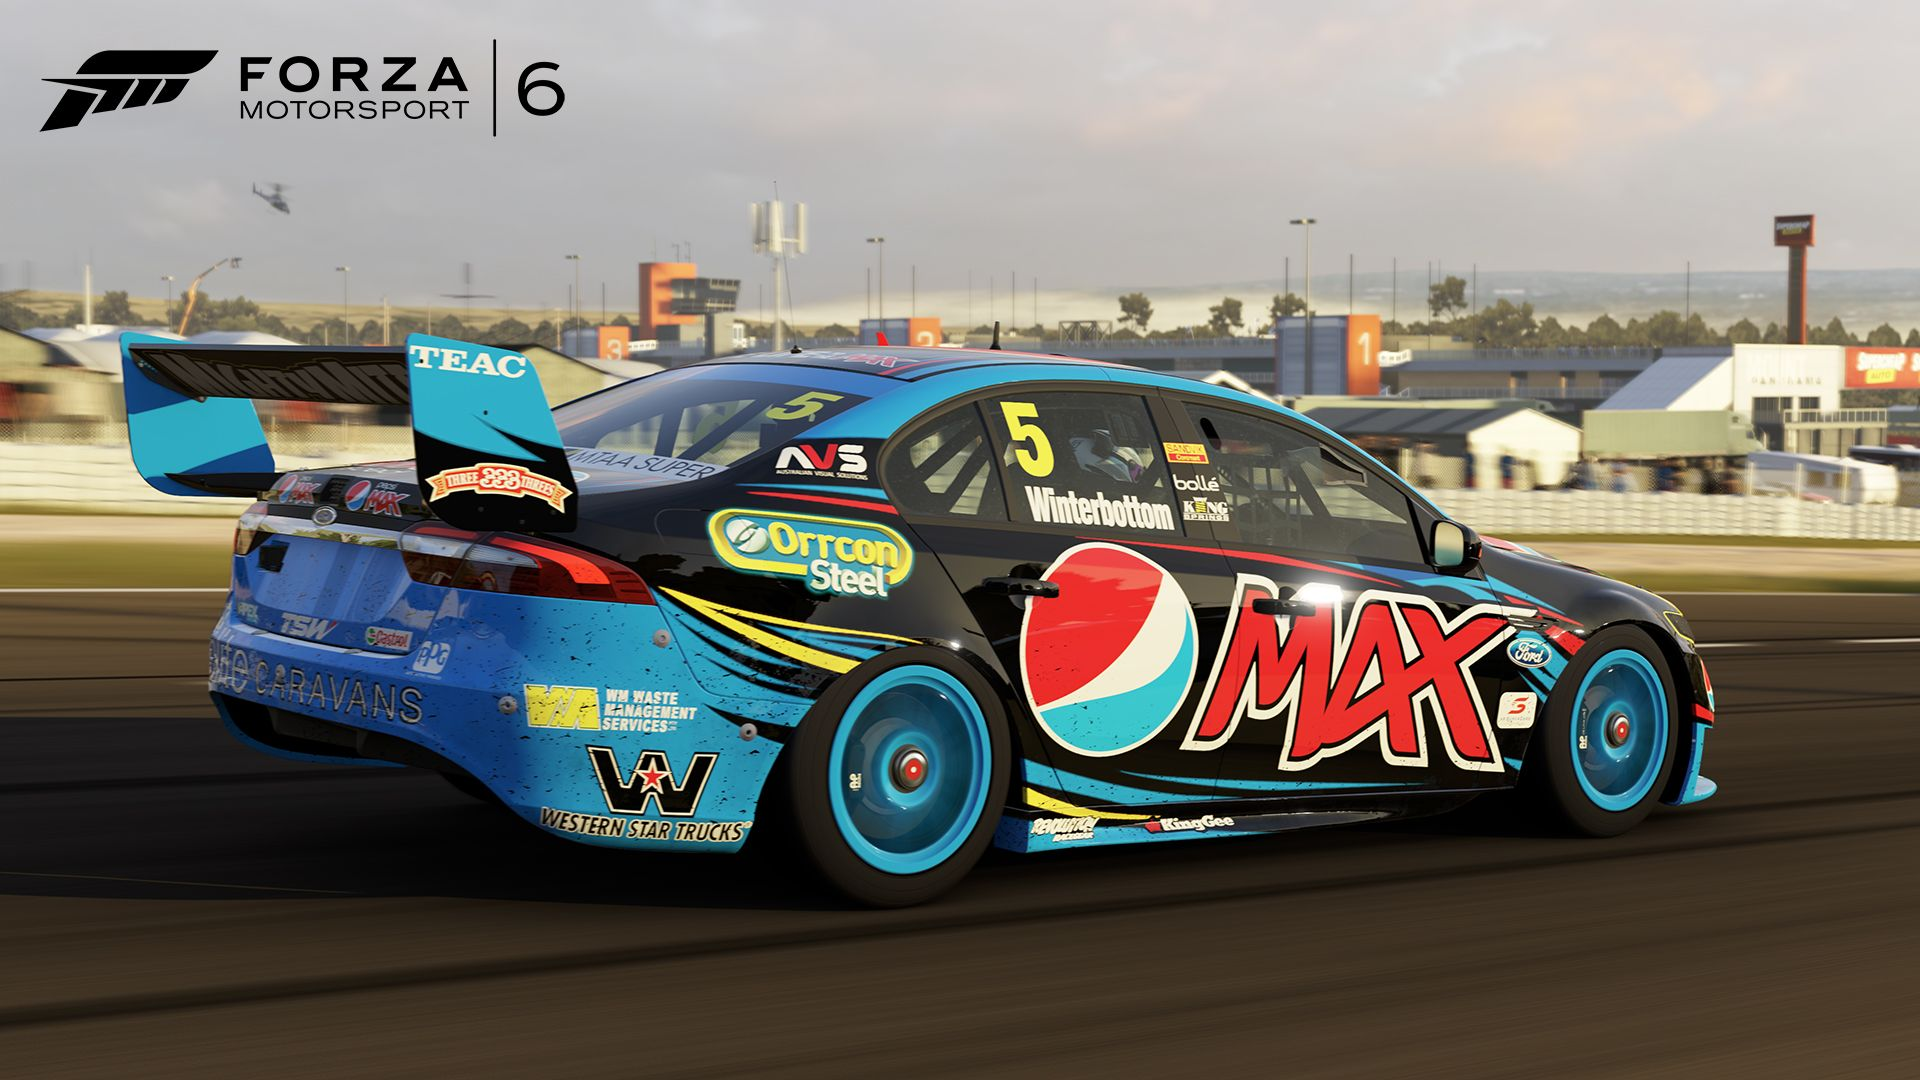 Race Down Under With V8 Supercars Australia In The Forza Motorsport 6 Garage V8 Supercars Australia Forza Motorsport 6 Super Cars